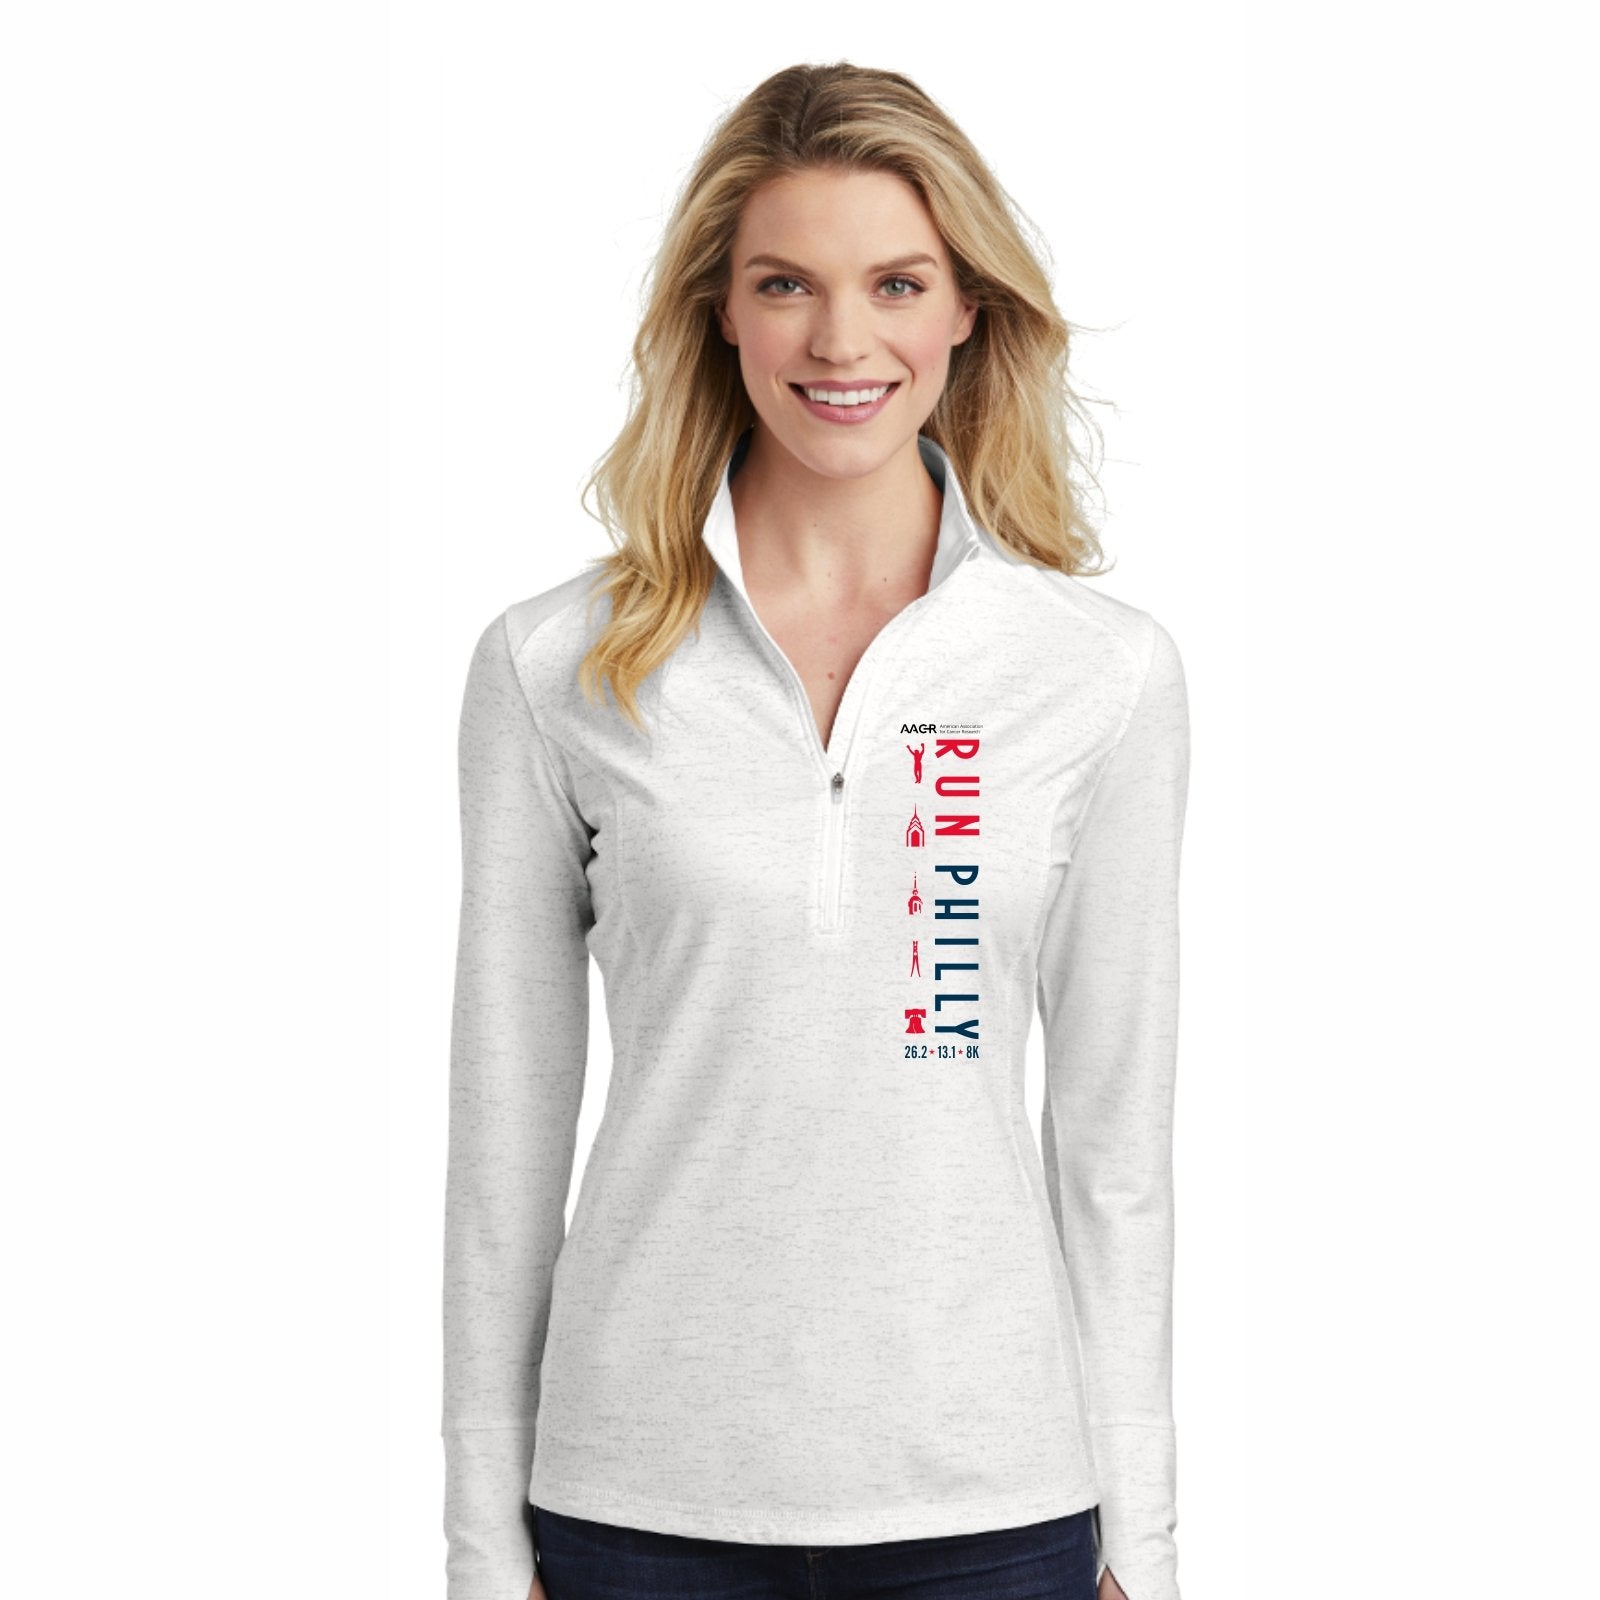 Women's Reflective Tech 1/2 Zip -White 'LCP Run Philly Design' - AACR Philadelphia Marathon